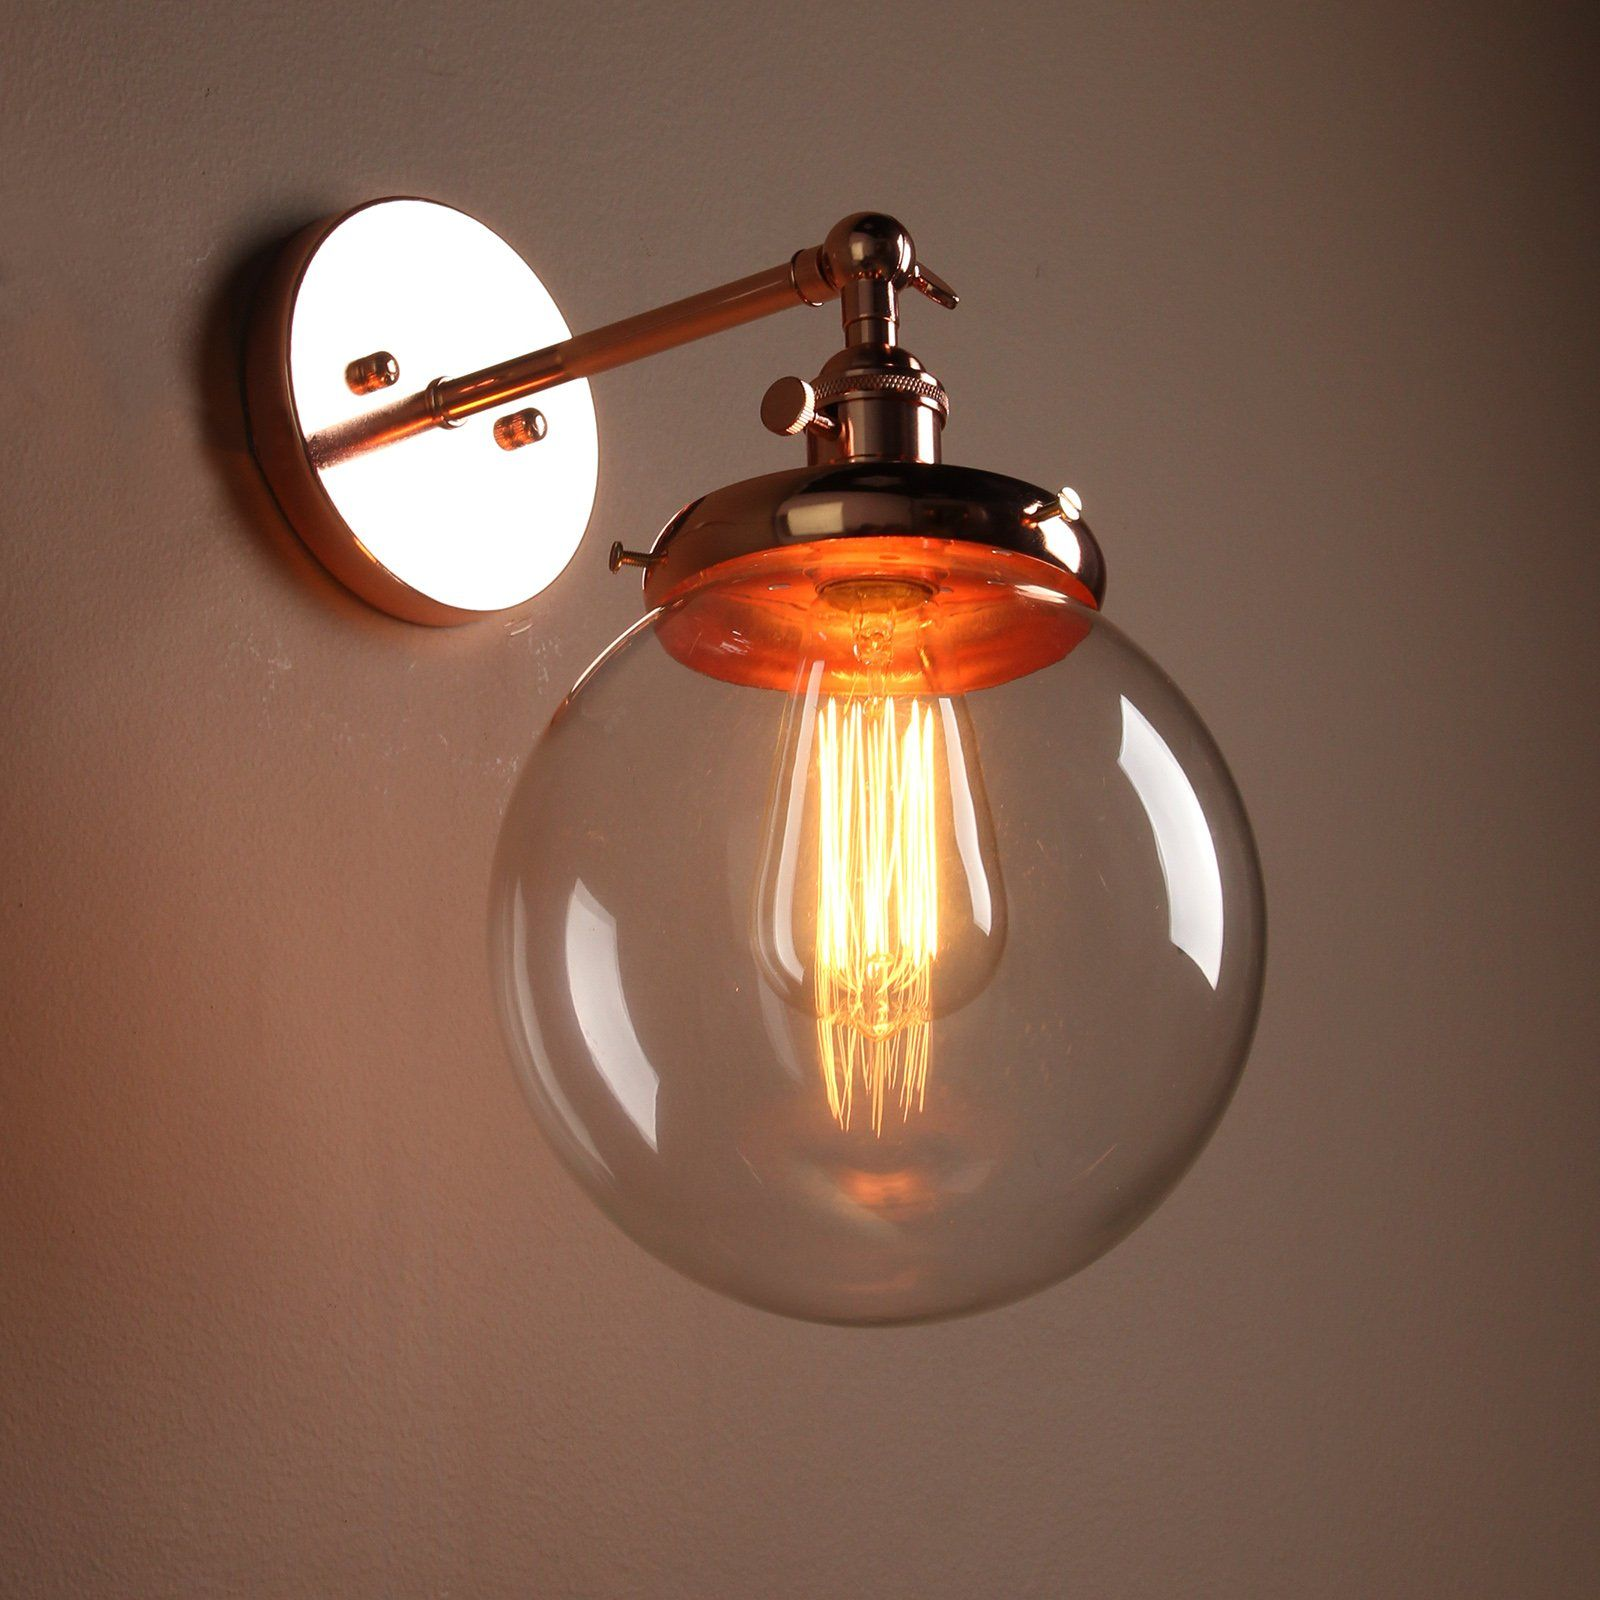 Modern Kitchen Battery Operated Buyee Modern Vintage Industrial Edison Wall Sconce Glass